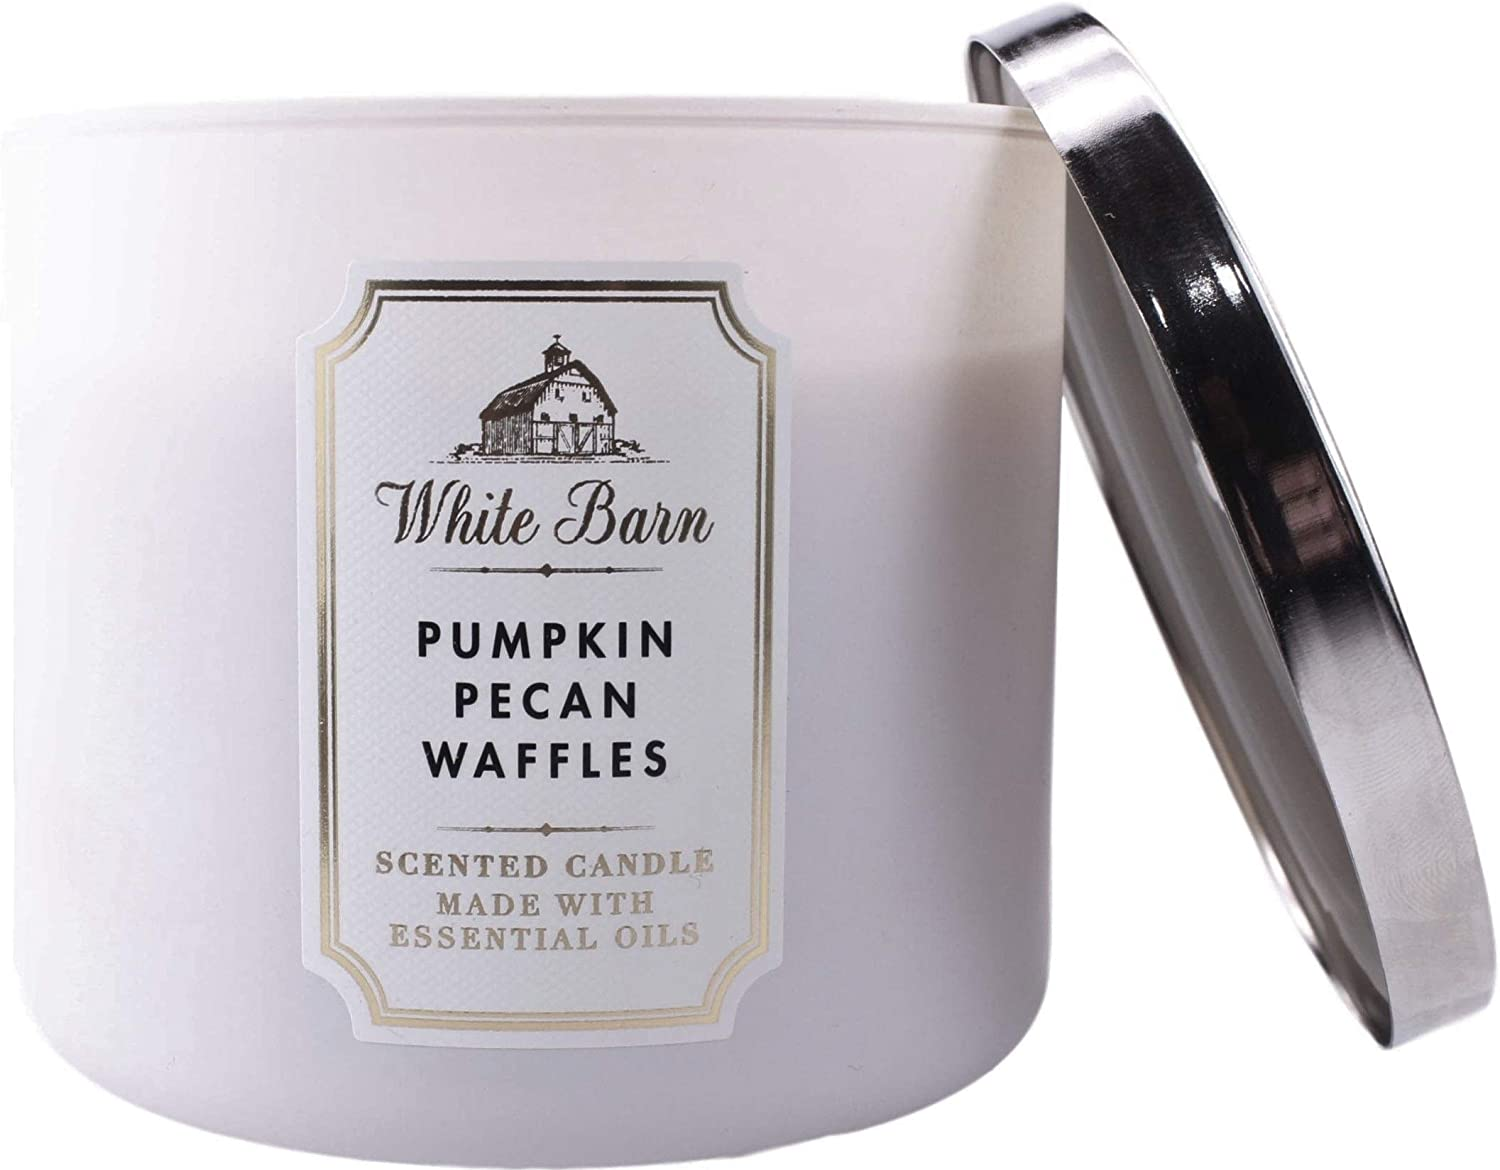 White Barn Bath and Body Works Pumpkin Pecan Waffle 3 Wick Scented Candle 14.5 Ounce